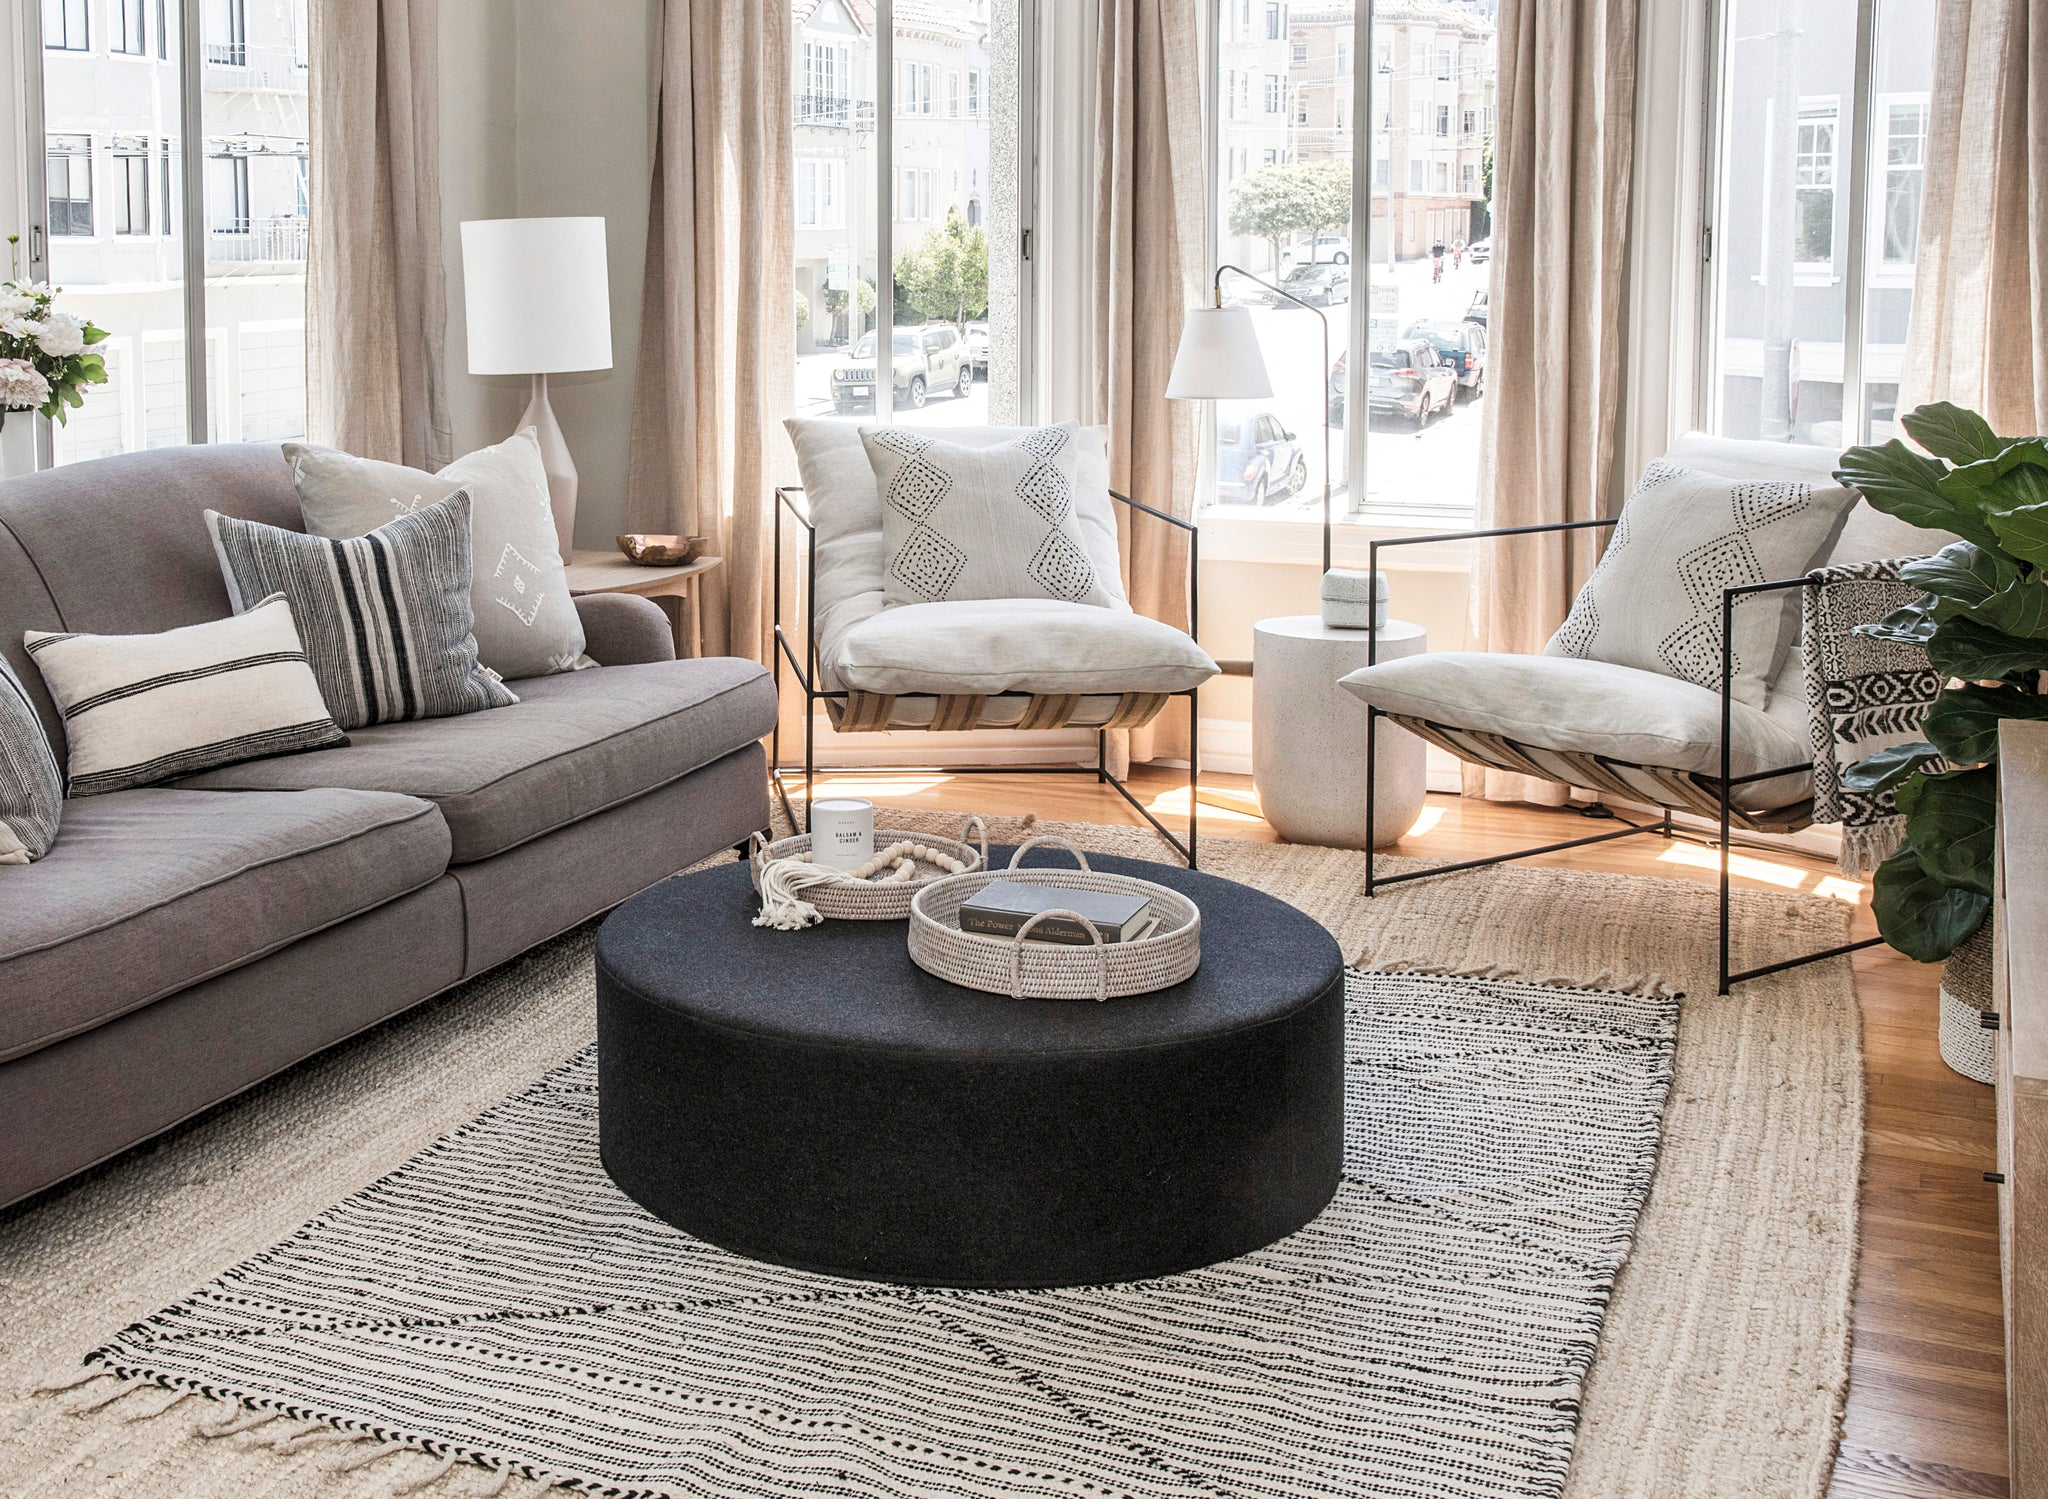 Marina Flat living horizontal room shot with black frame white cushion lounge chairs, traveled pillows, black fabric ottoman coffee table with bali beads and woven baskets, on top of handwoven Moroccan black and white rug.